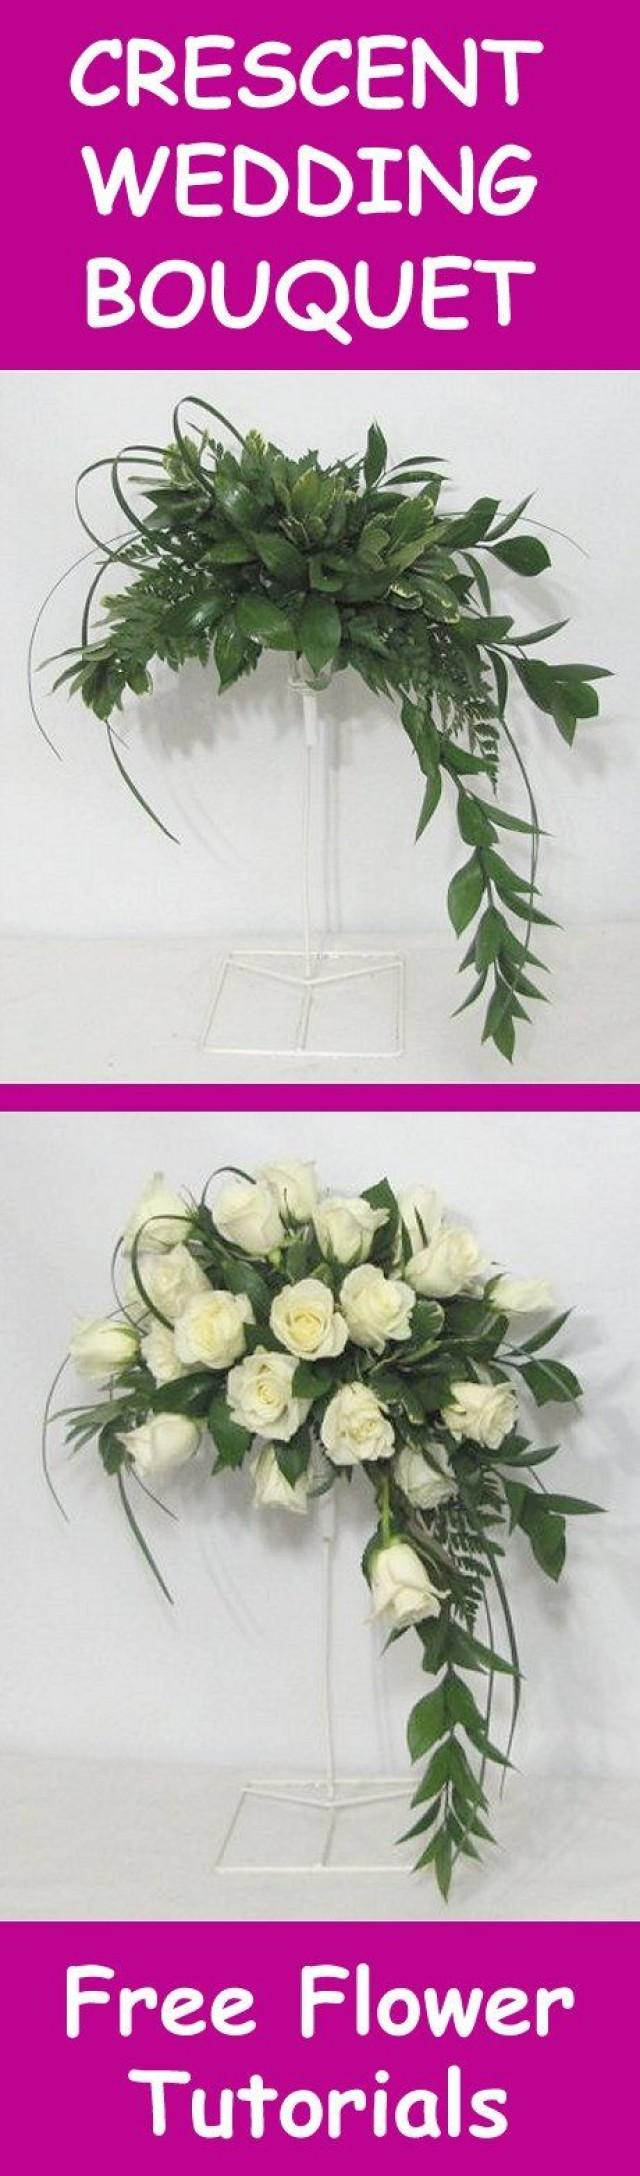 fresh flower wedding bouquet easy diy flower tutorials 2717982 weddbook. Black Bedroom Furniture Sets. Home Design Ideas